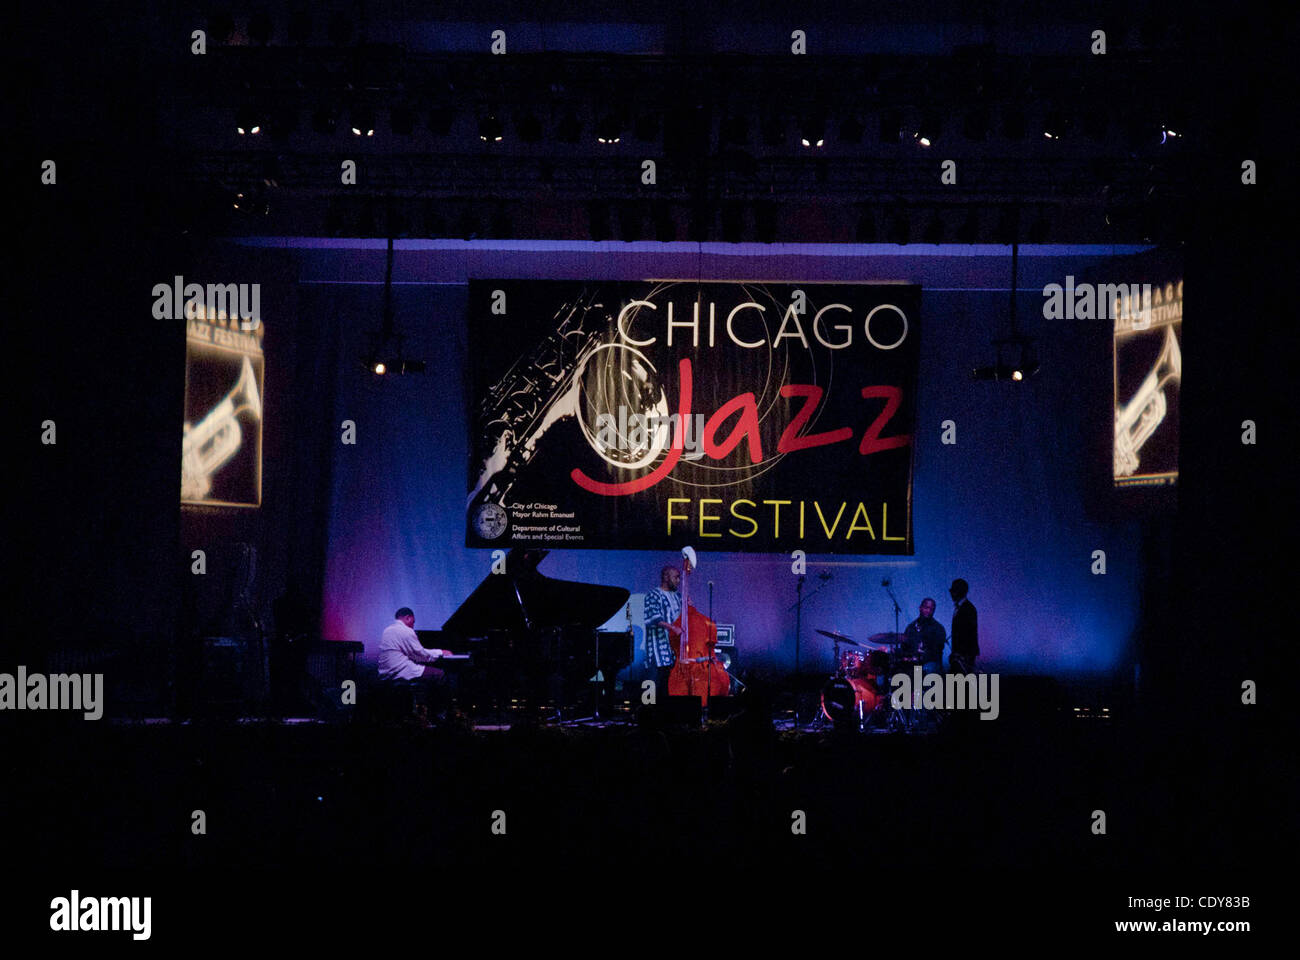 Four days of music gets Chicago in the groove during the popular free jazz music series. - Stock Image